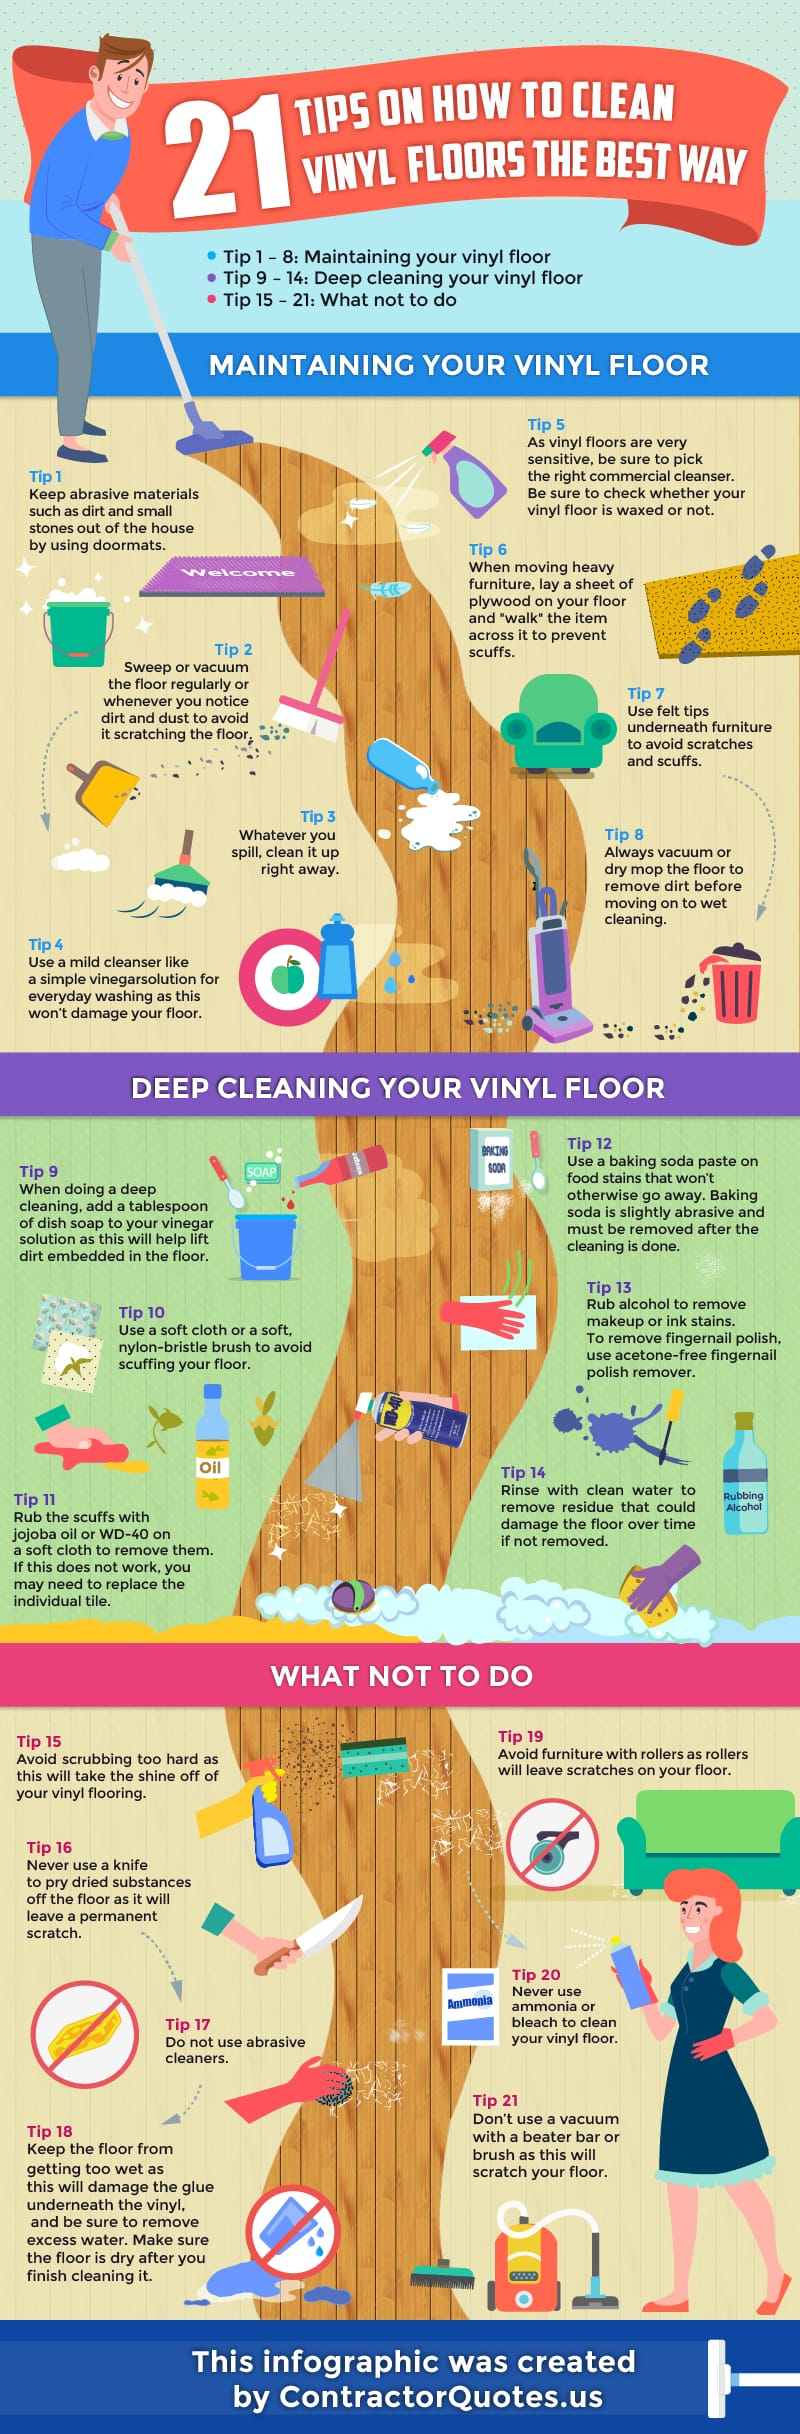 infographic explaining the different steps of cleaning vinyl plank floors